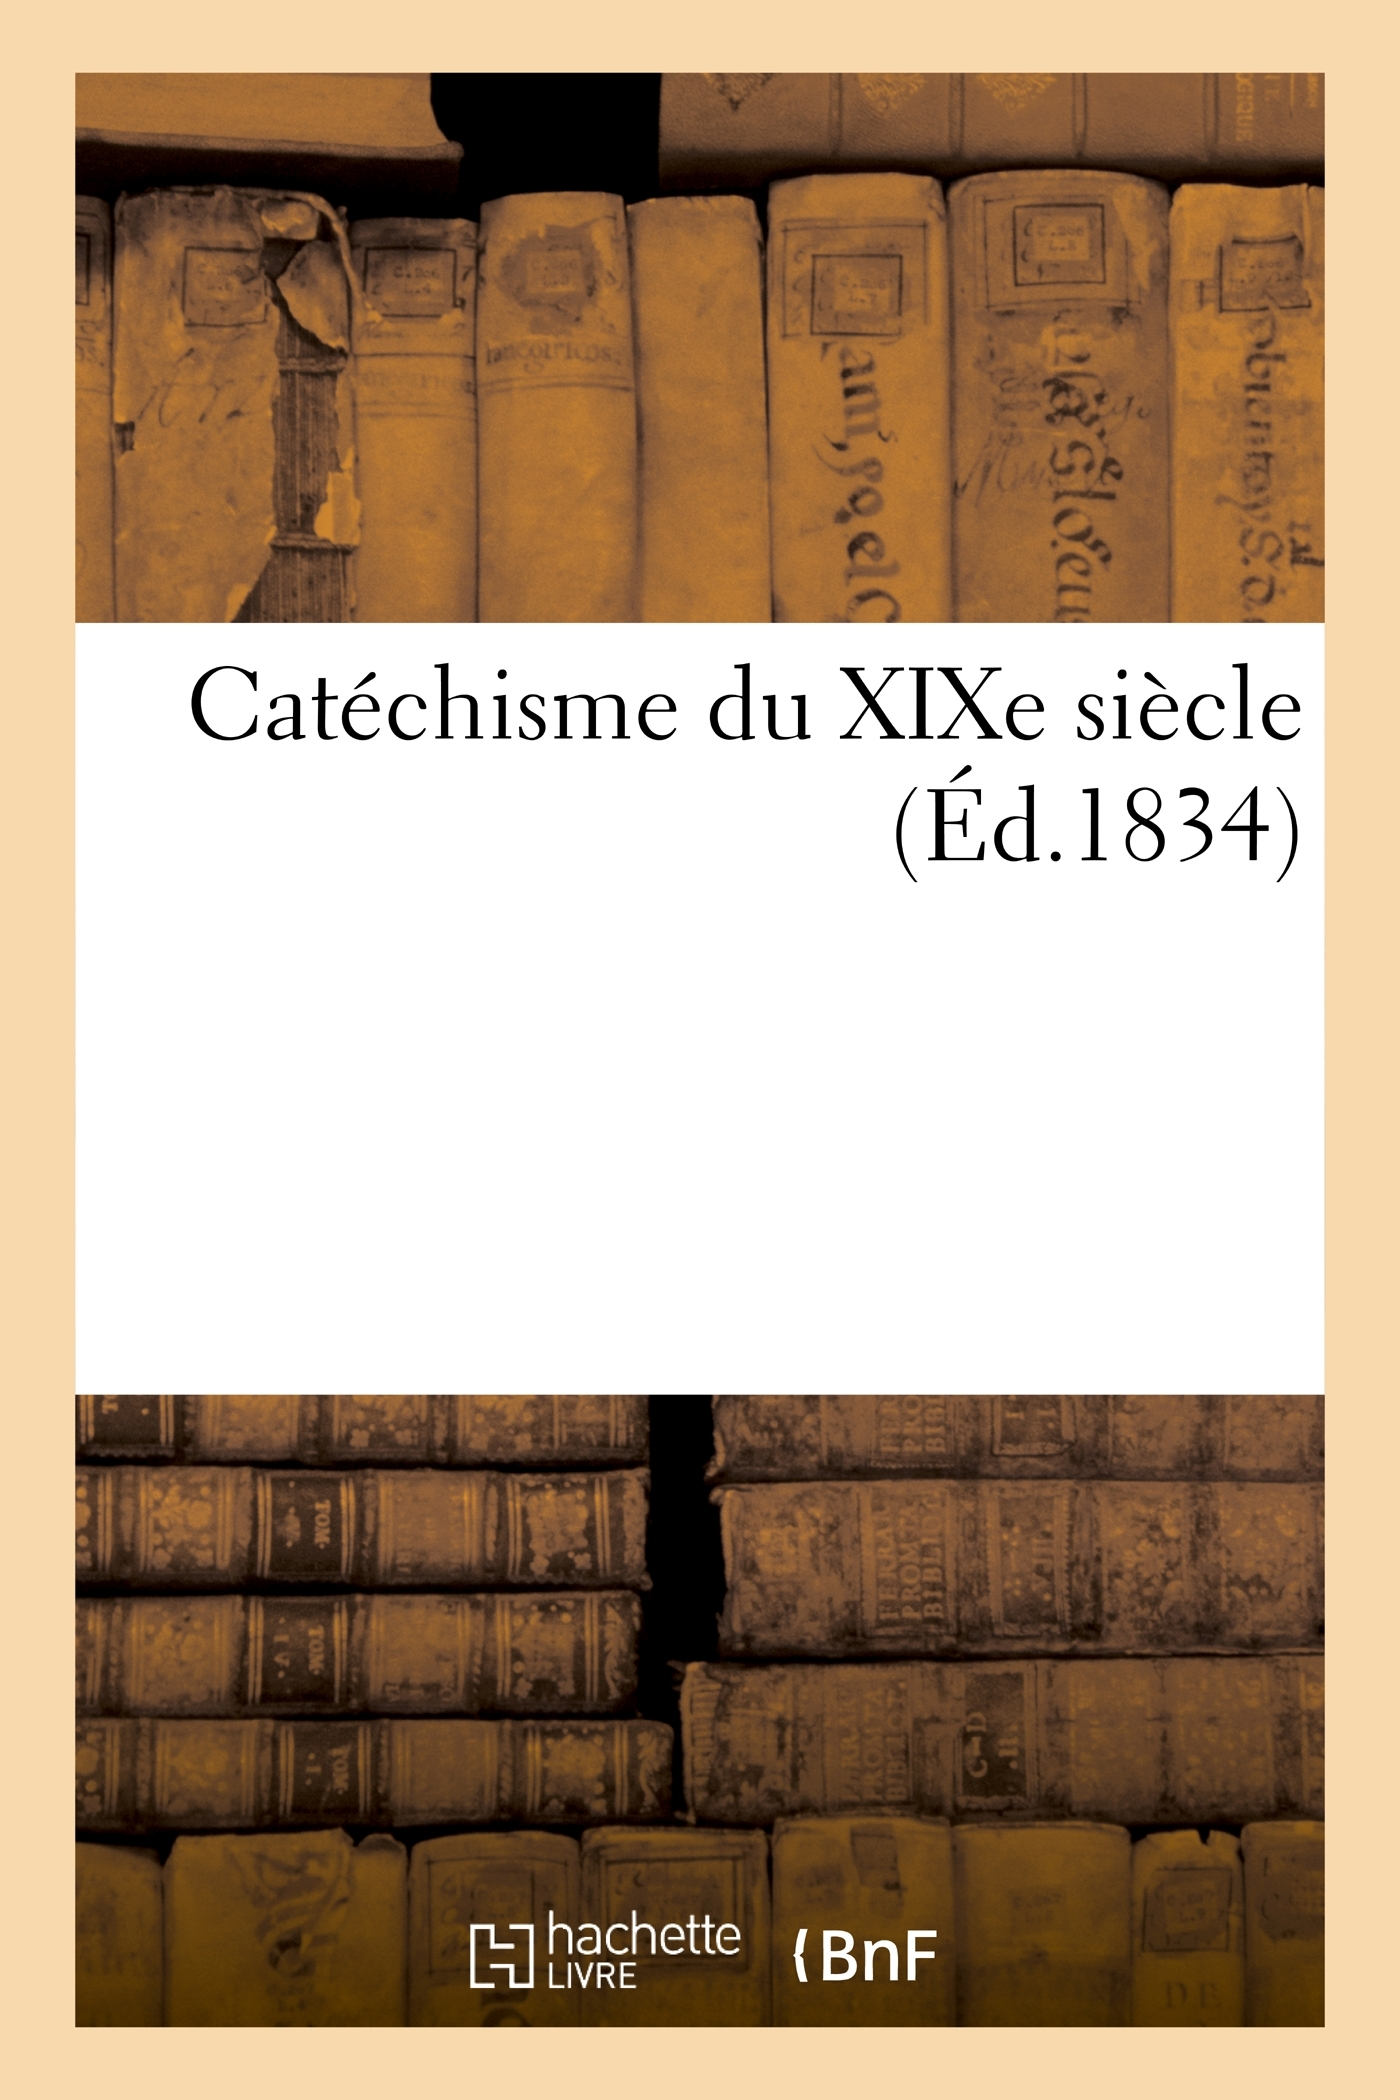 CATECHISME DU XIXE SIECLE